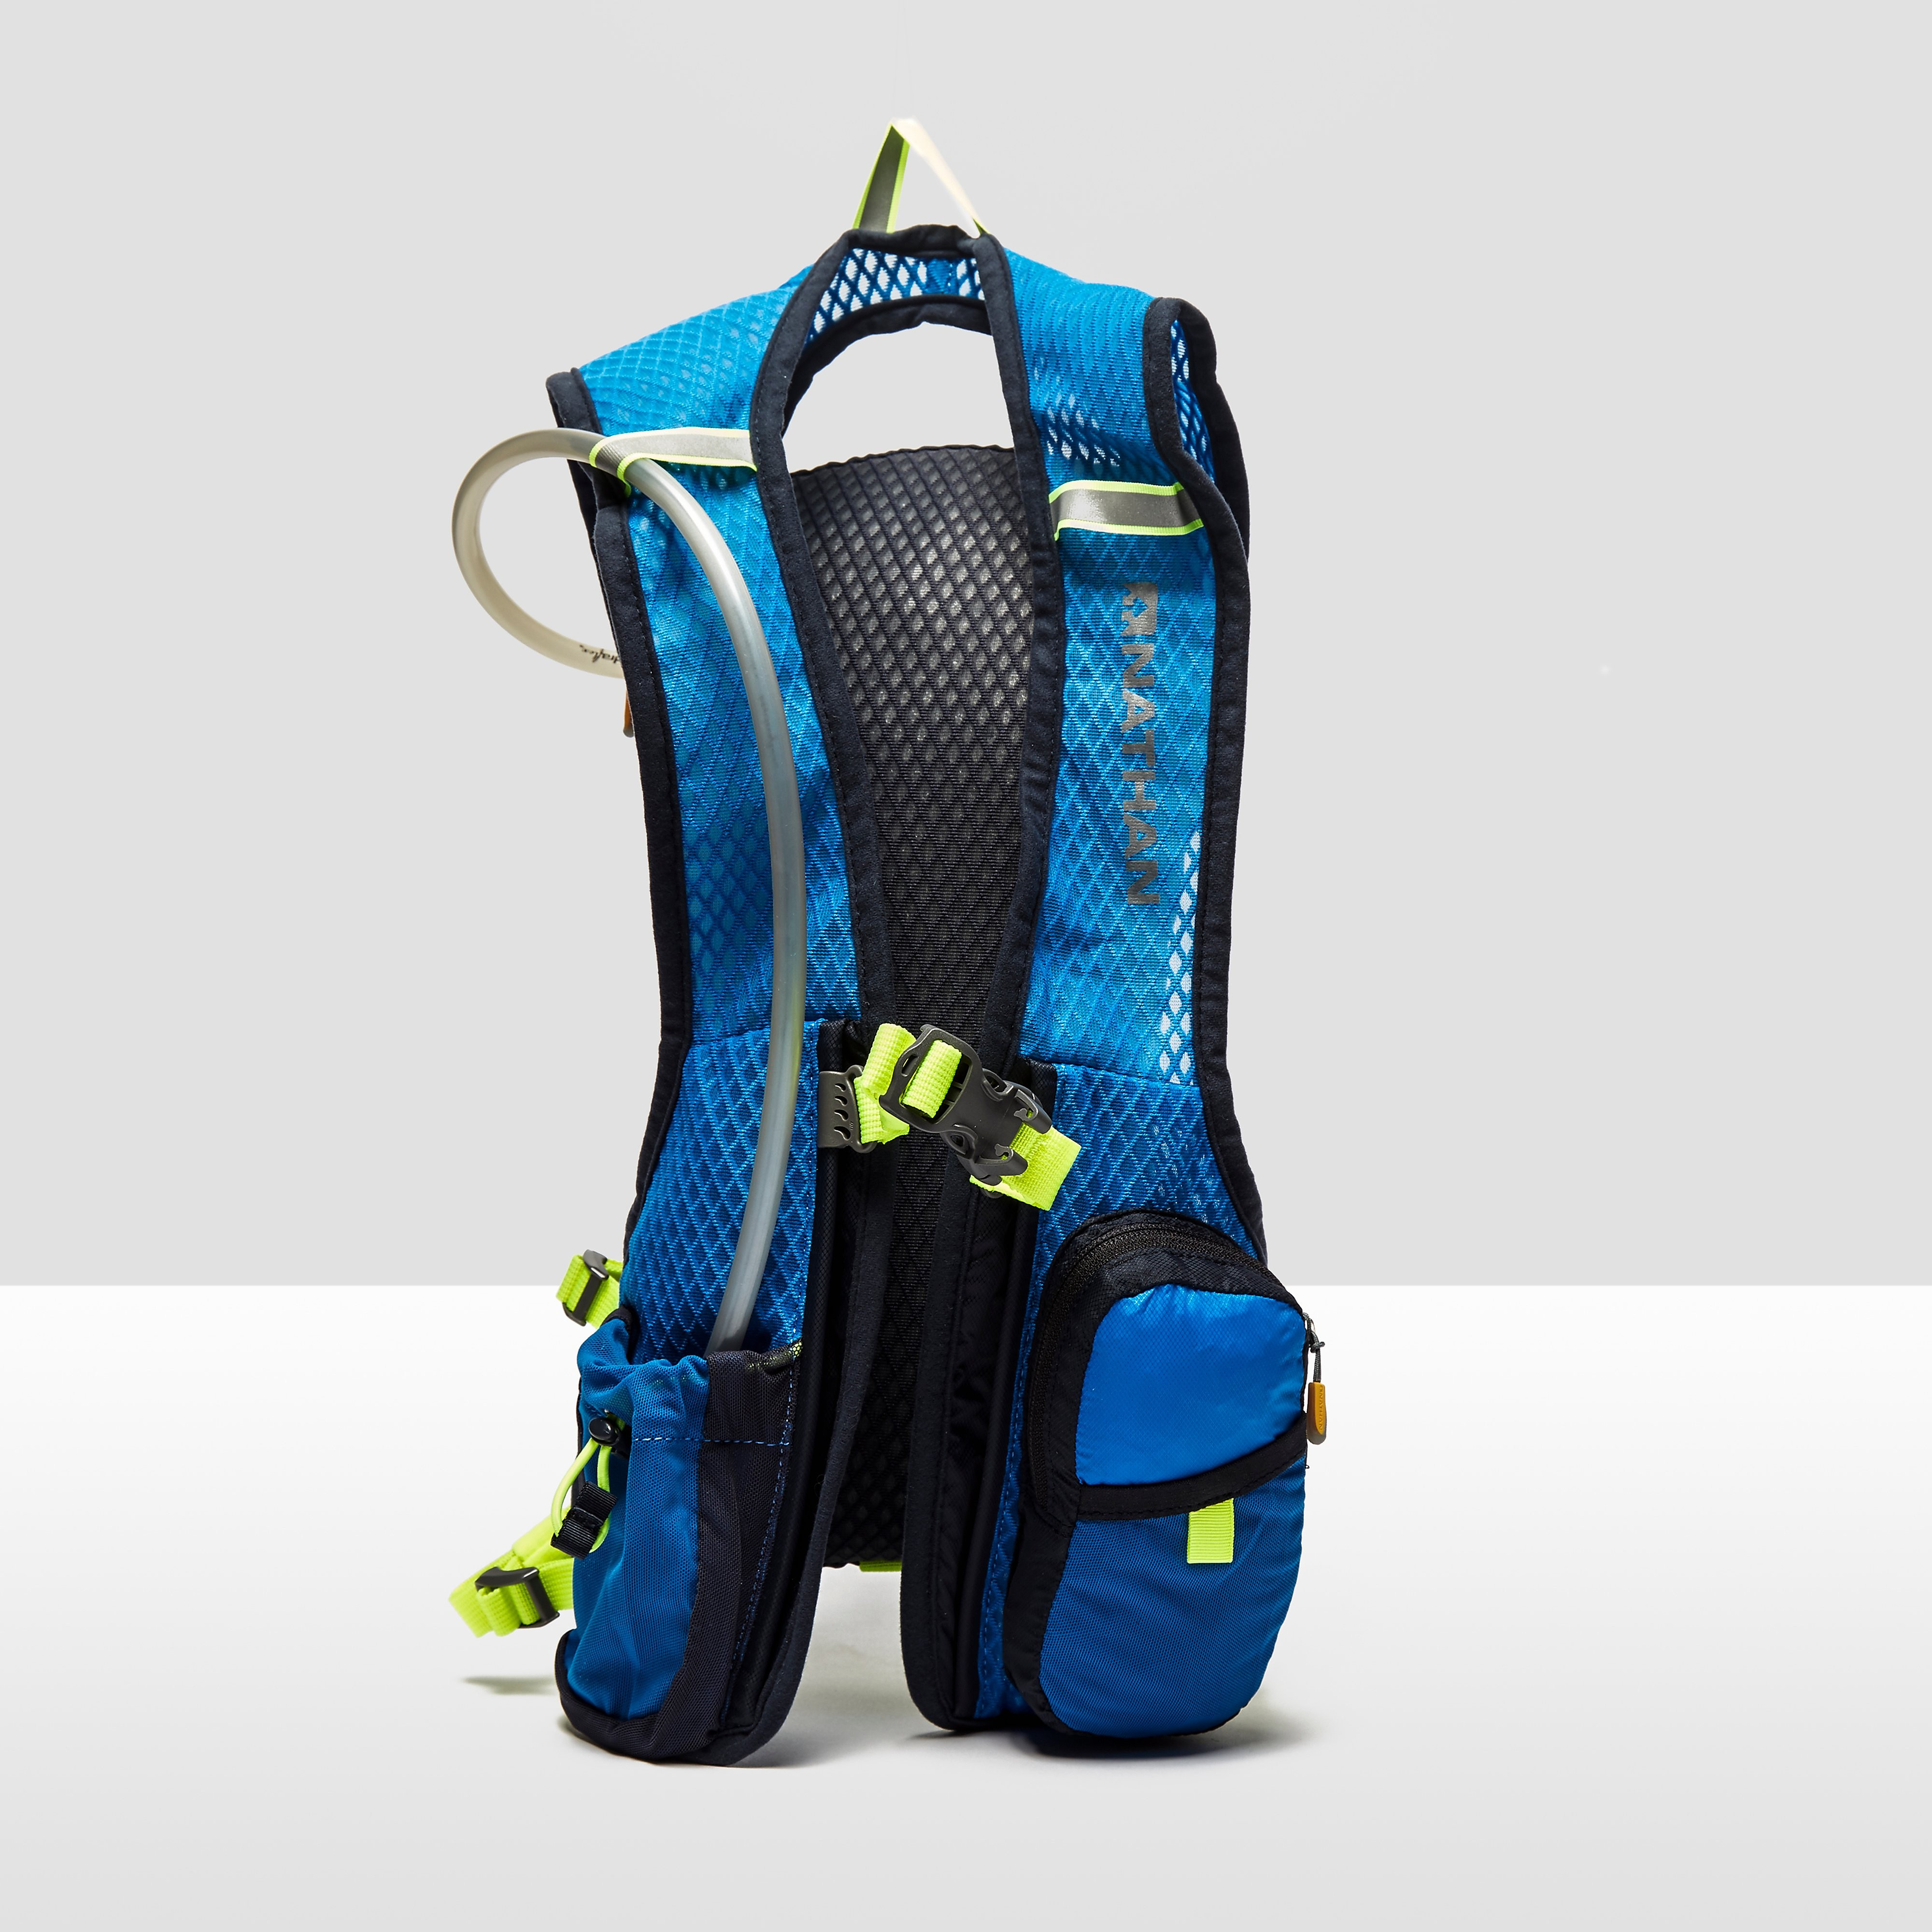 Nathan 6L Grit Hydration Pack